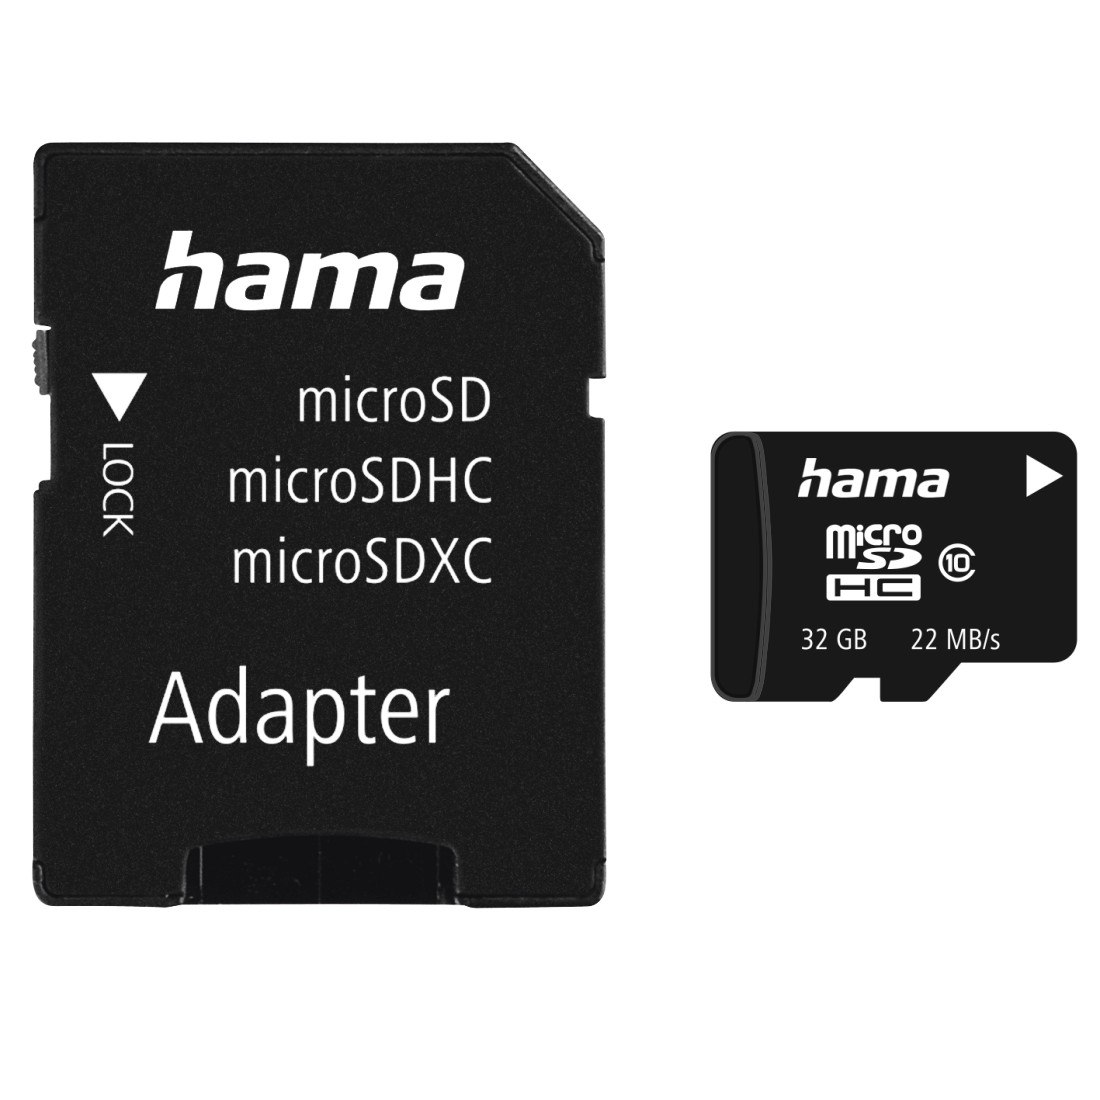 abx High-Res Image - Hama, microSDHC 32GB Class 10 22MB/s + Adapter/Photo